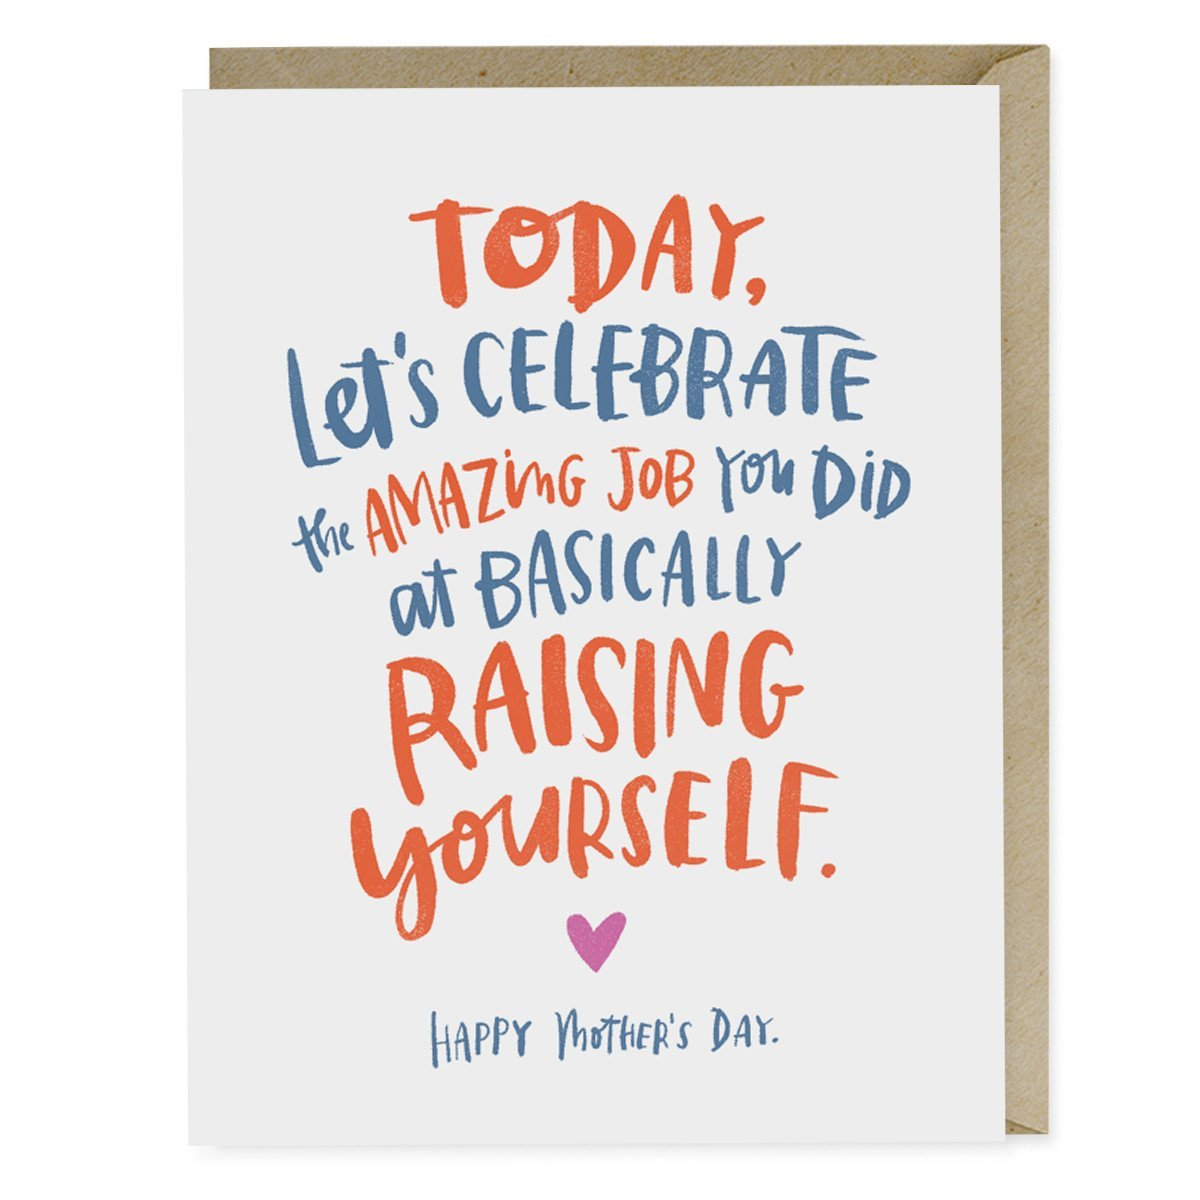 raising yourself mother s day card emily mcdowell studio